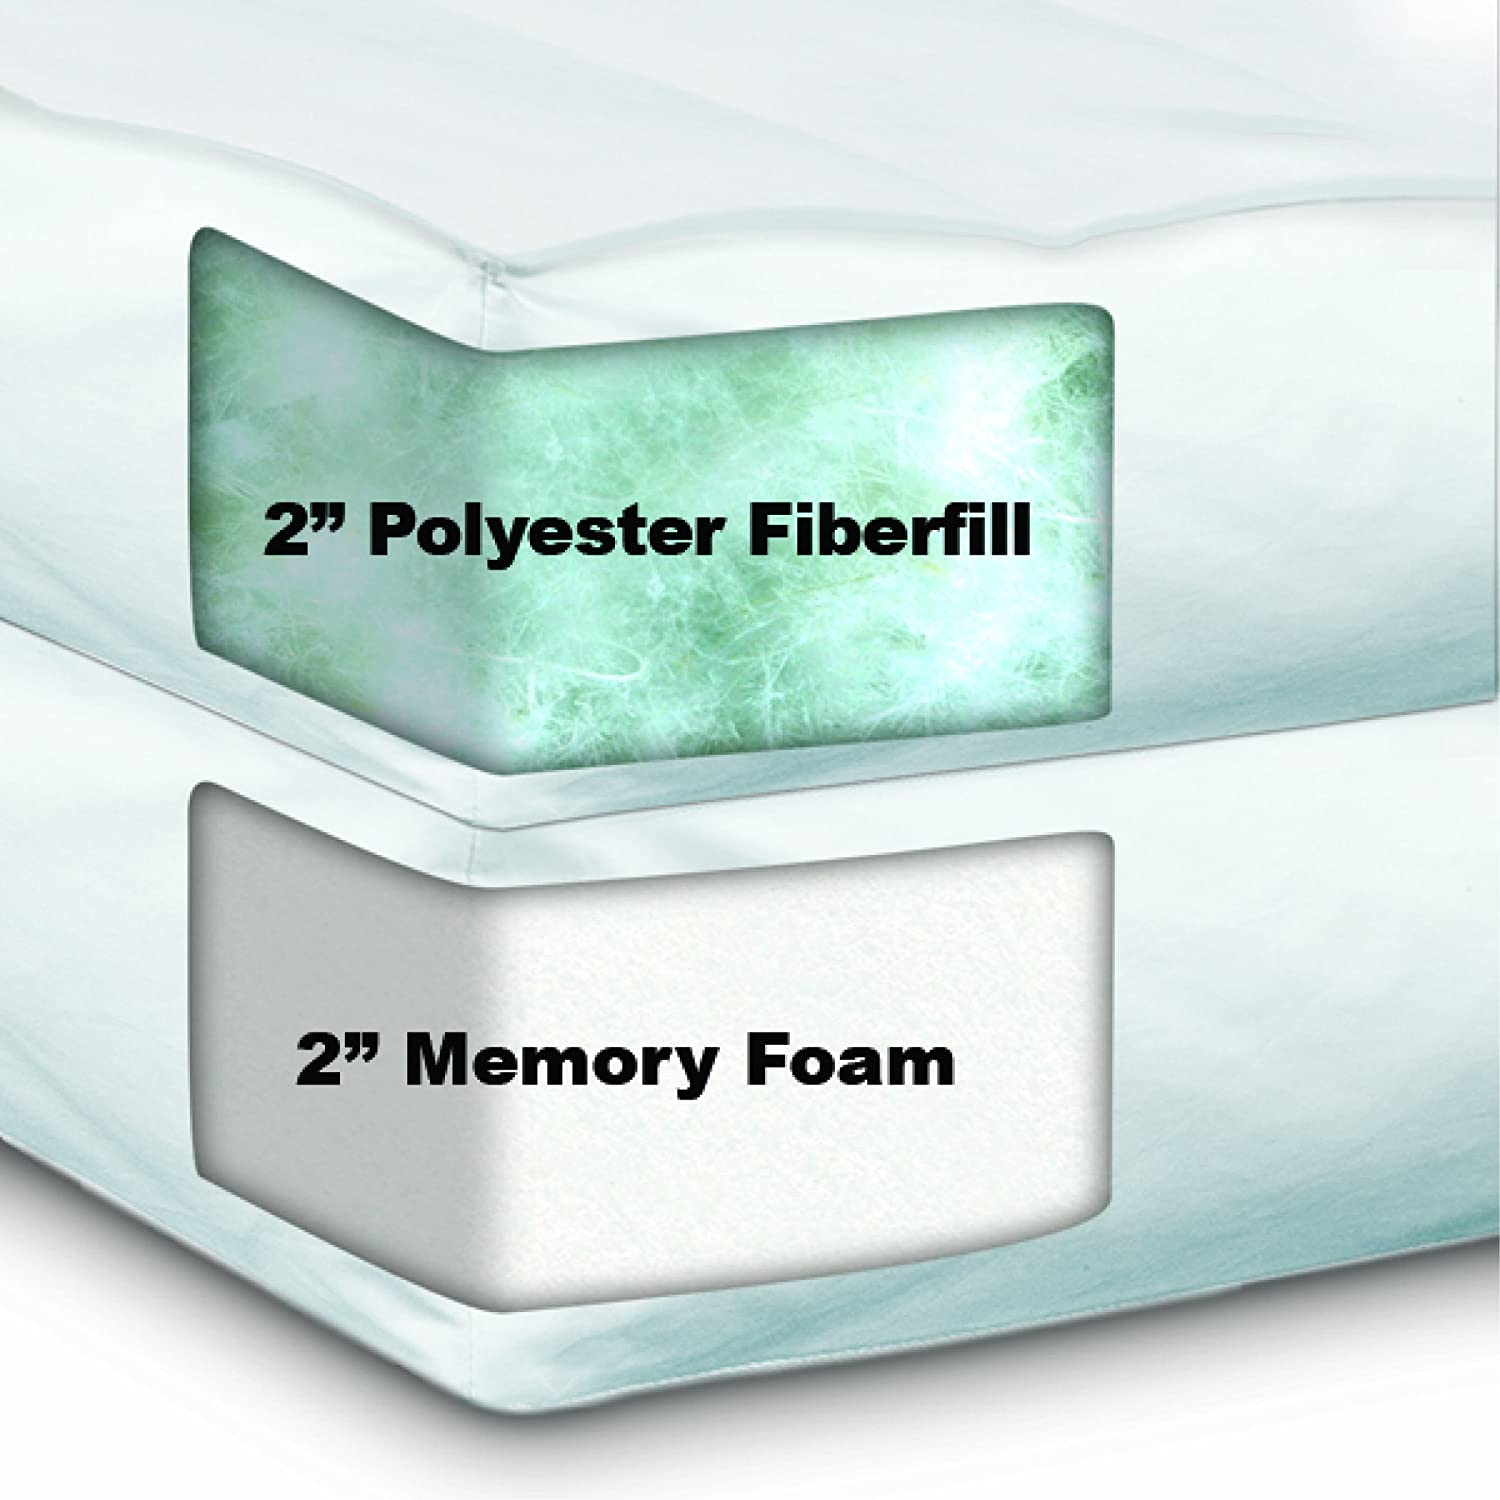 Sleep Joy Memory Foam Topper Serta 4 Inch Dual Layer Memory Foam Mattress Topper